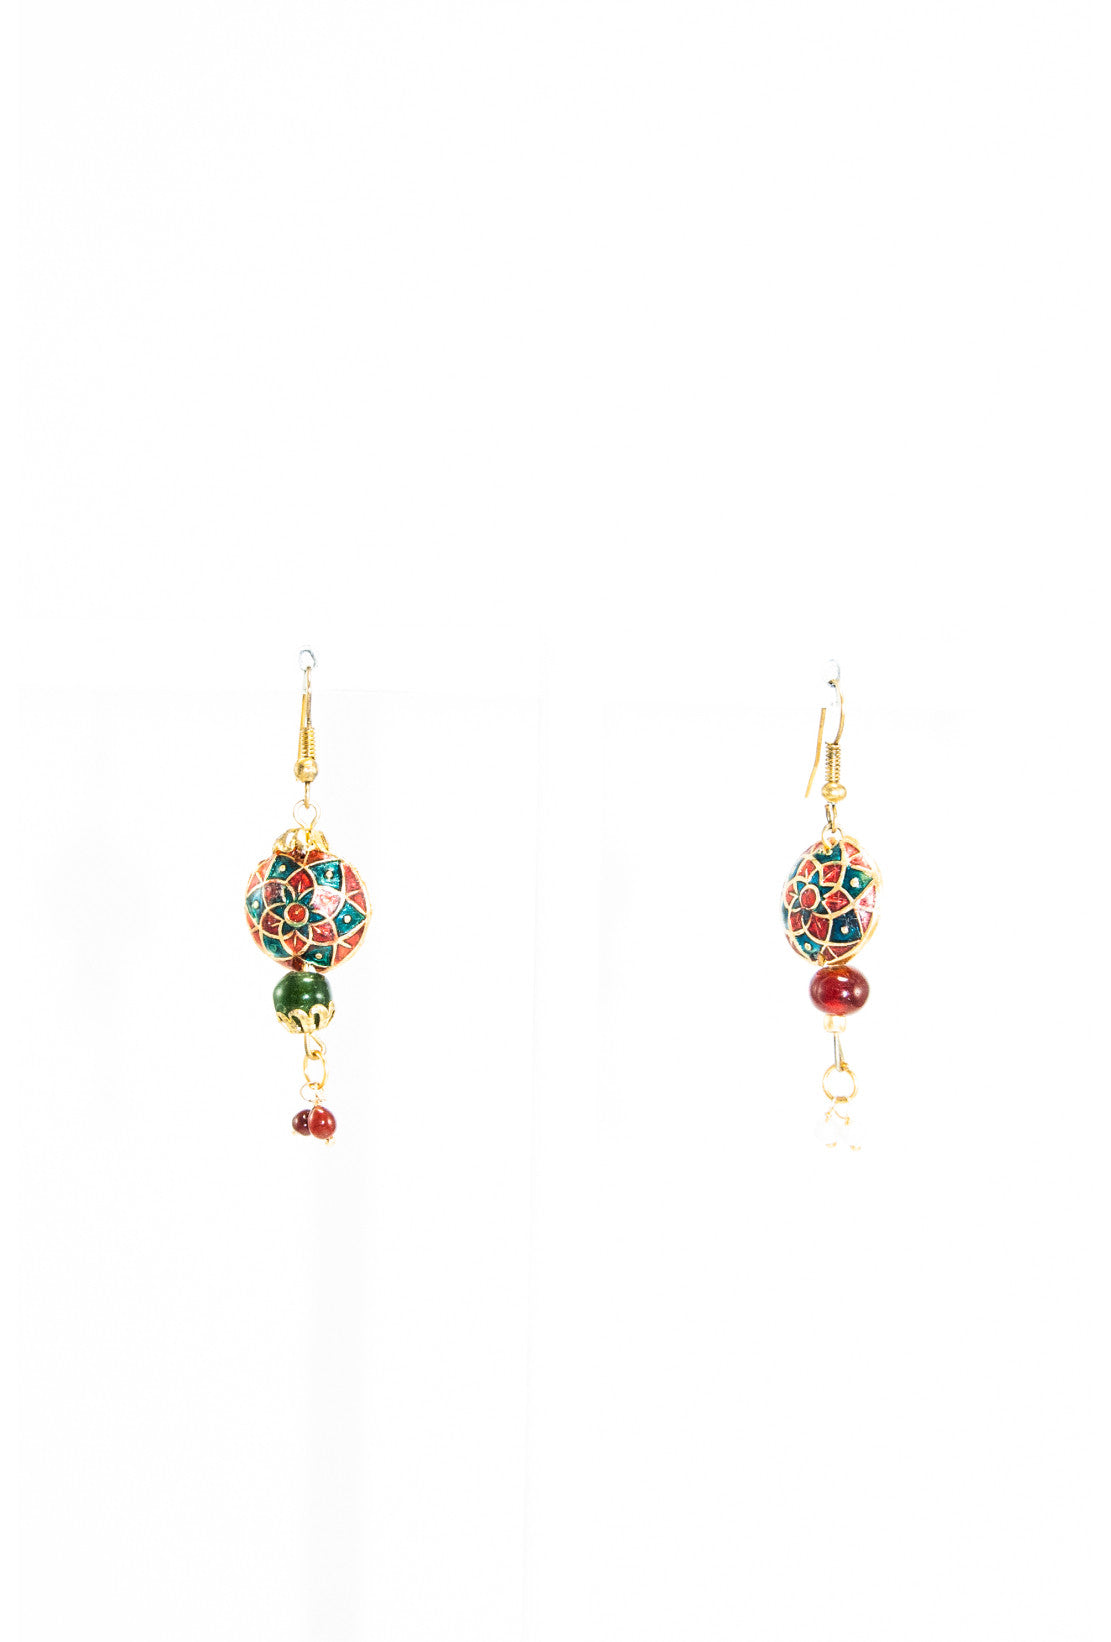 detailing delicate tone work v satin cut gold finish products small plated marrakesh dual earrings with round in inspired